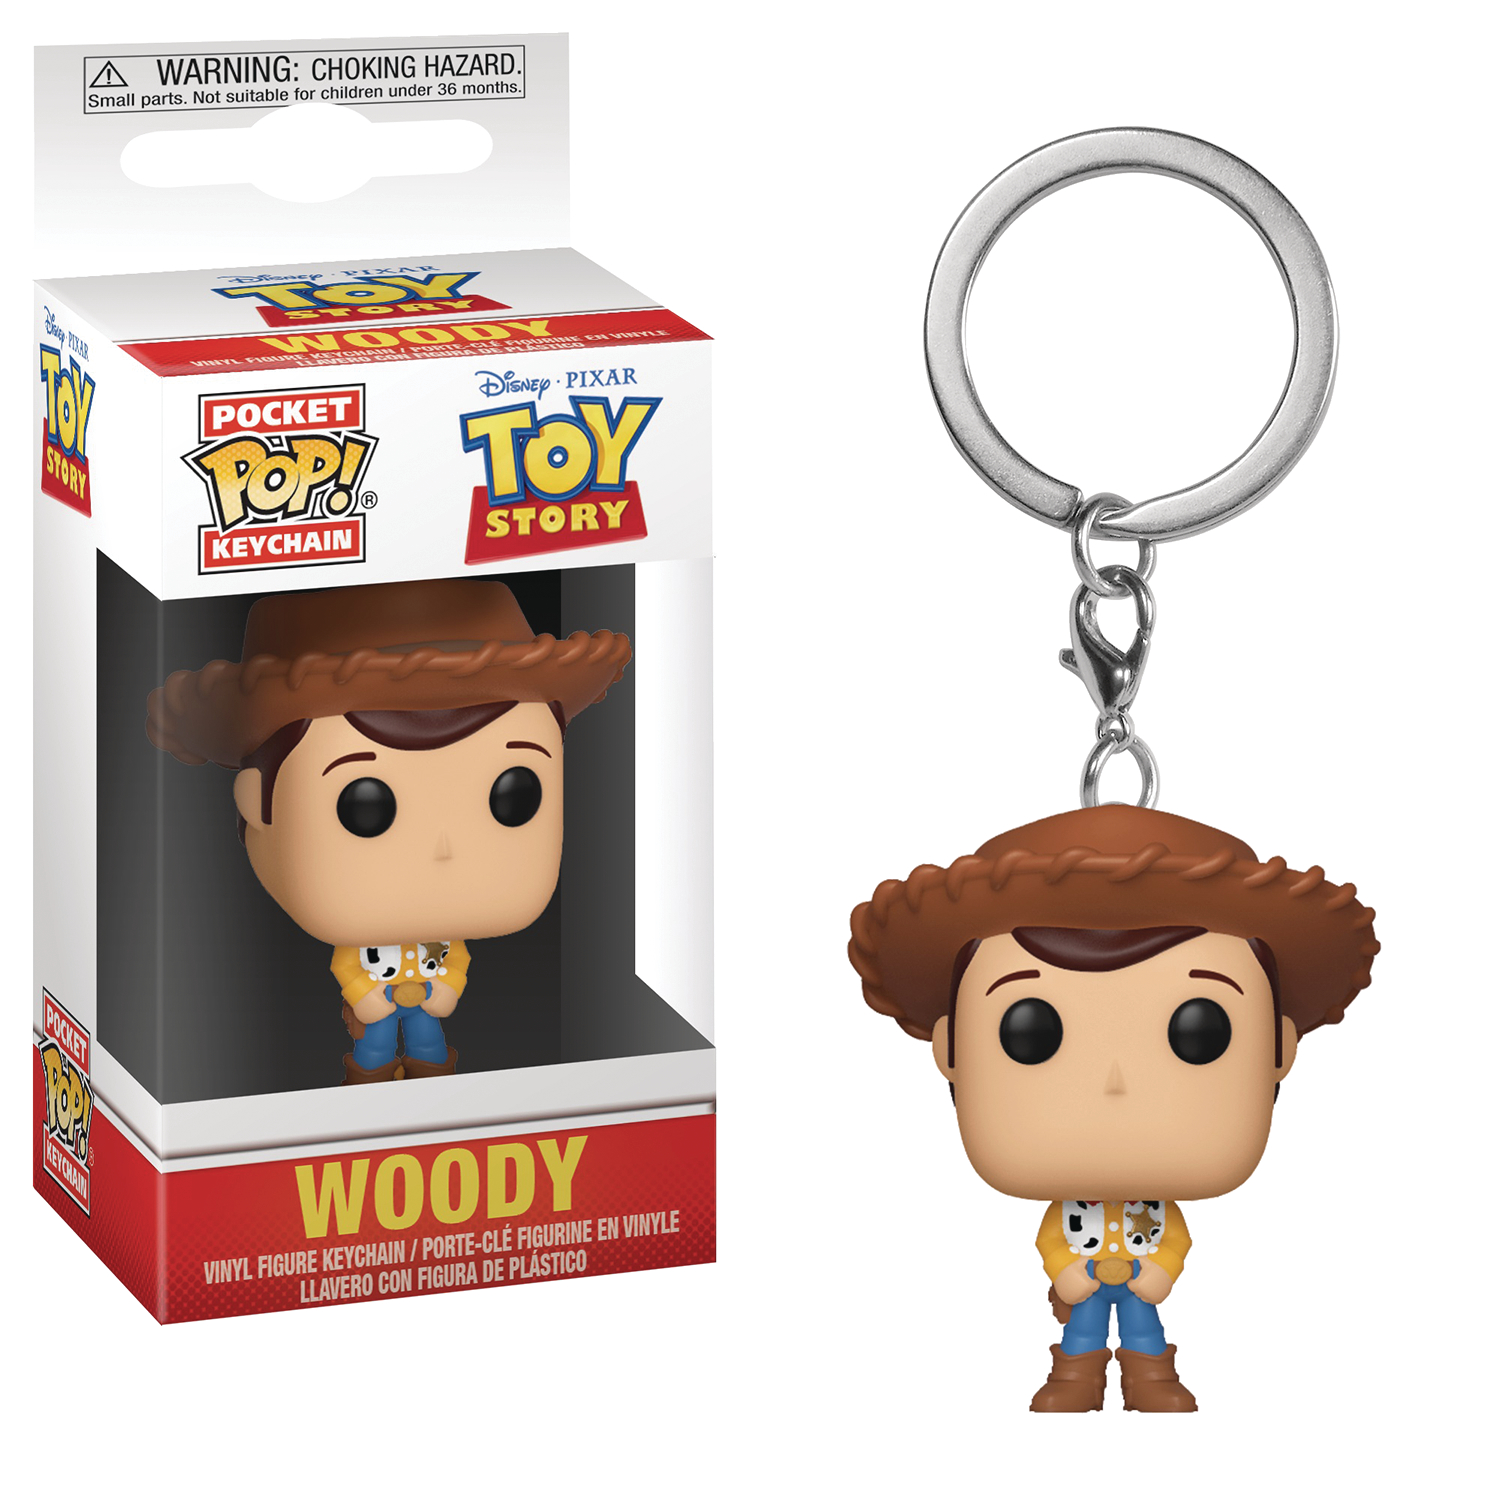 POCKET POP TOY STORY WOODY FIG KEYCHAIN